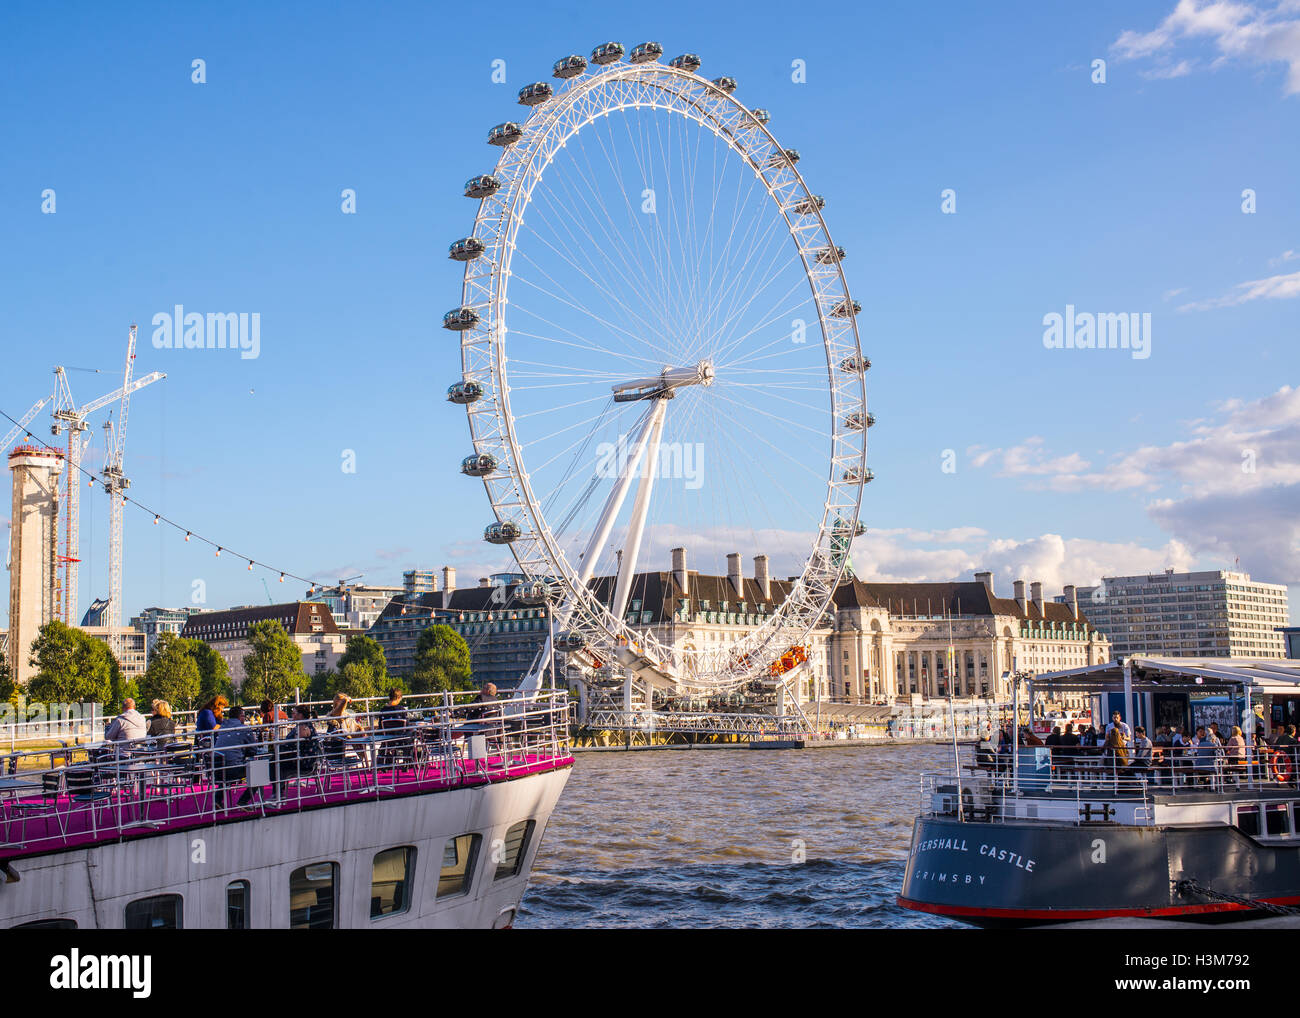 People drinking and eating on boat restaurants under the London Eye while cruising on the Thames Stock Photo